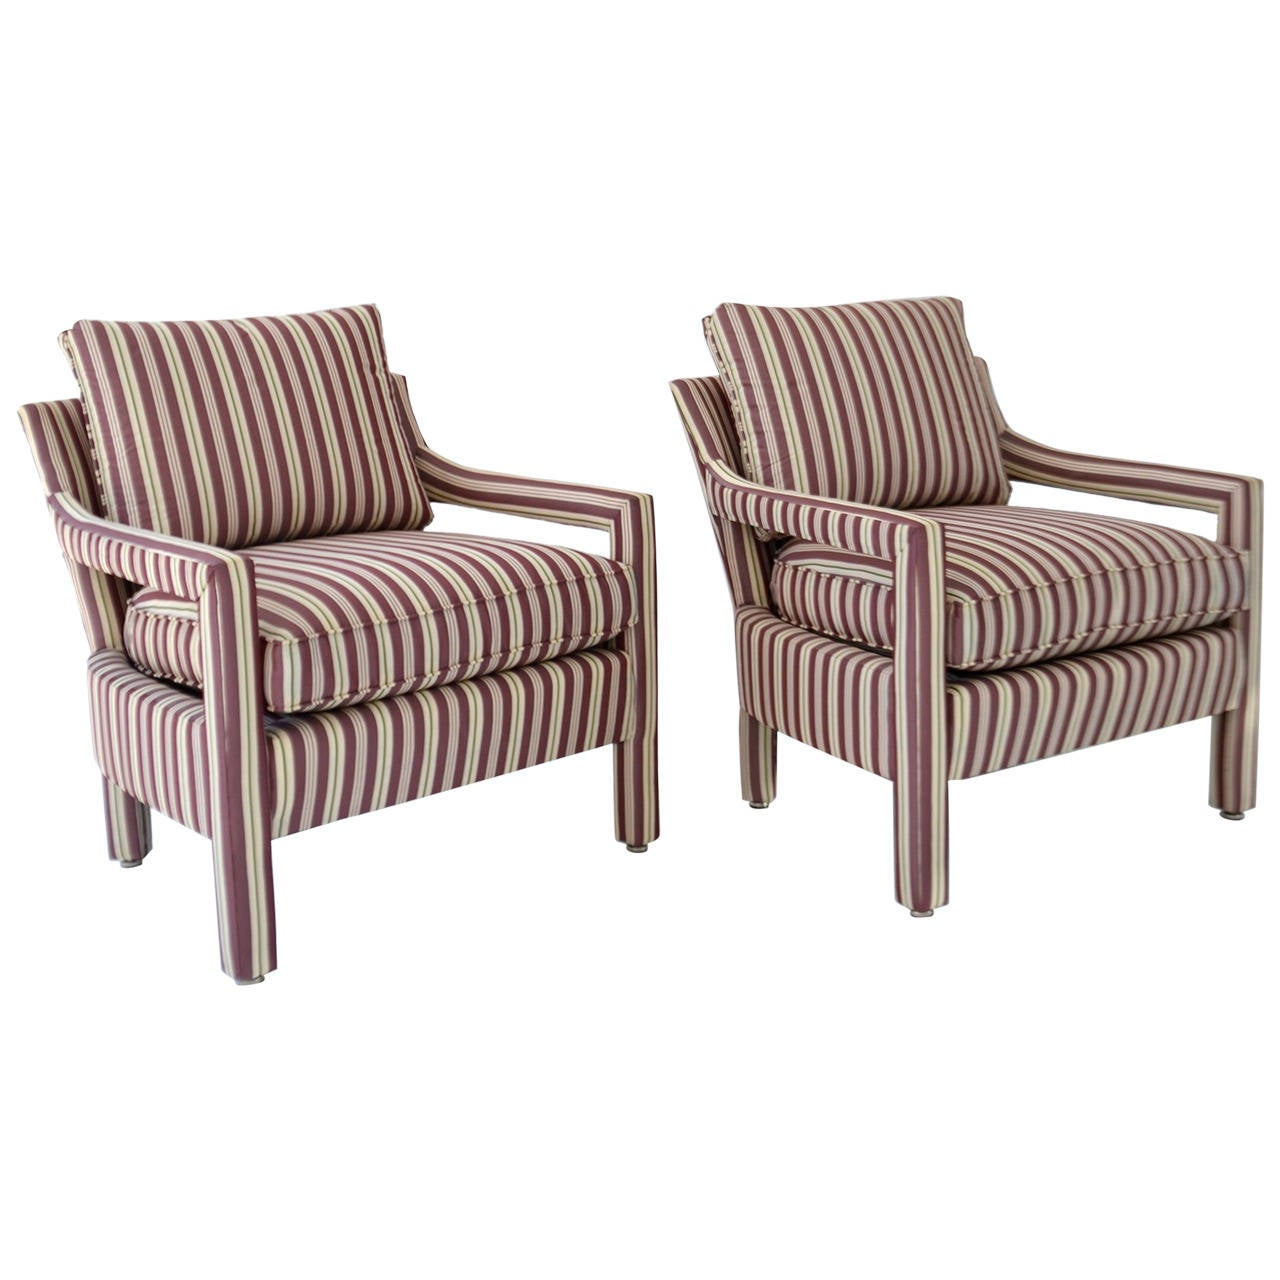 Upholstered Club Chair Pair Of Upholstered Club Chairs At 1stdibs